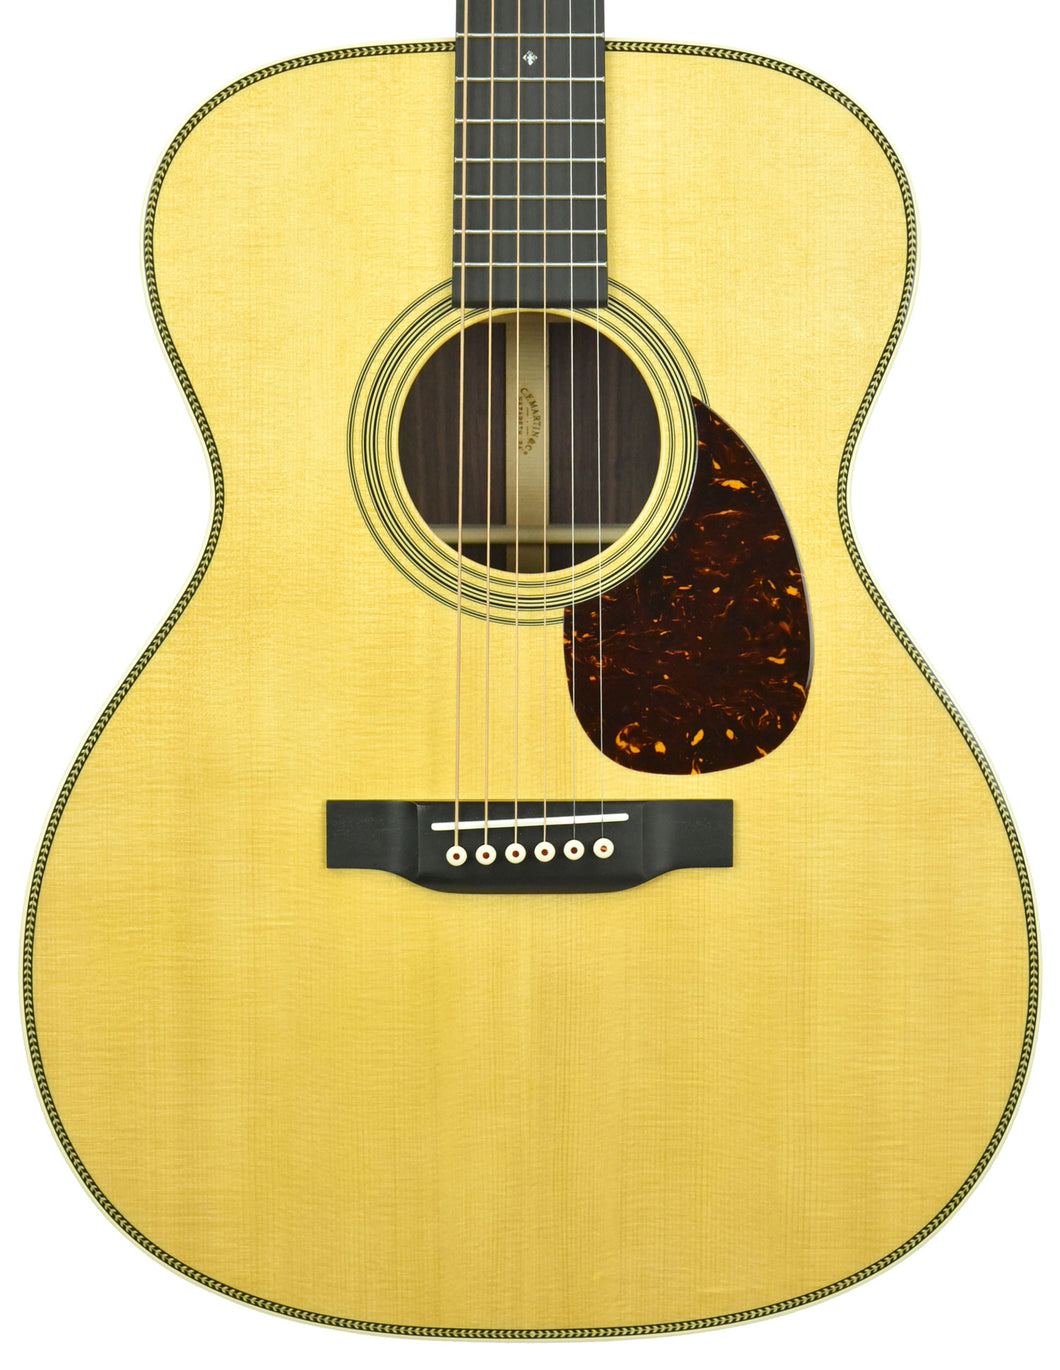 Martin OM-28 Acoustic Guitar in Natural 2339638